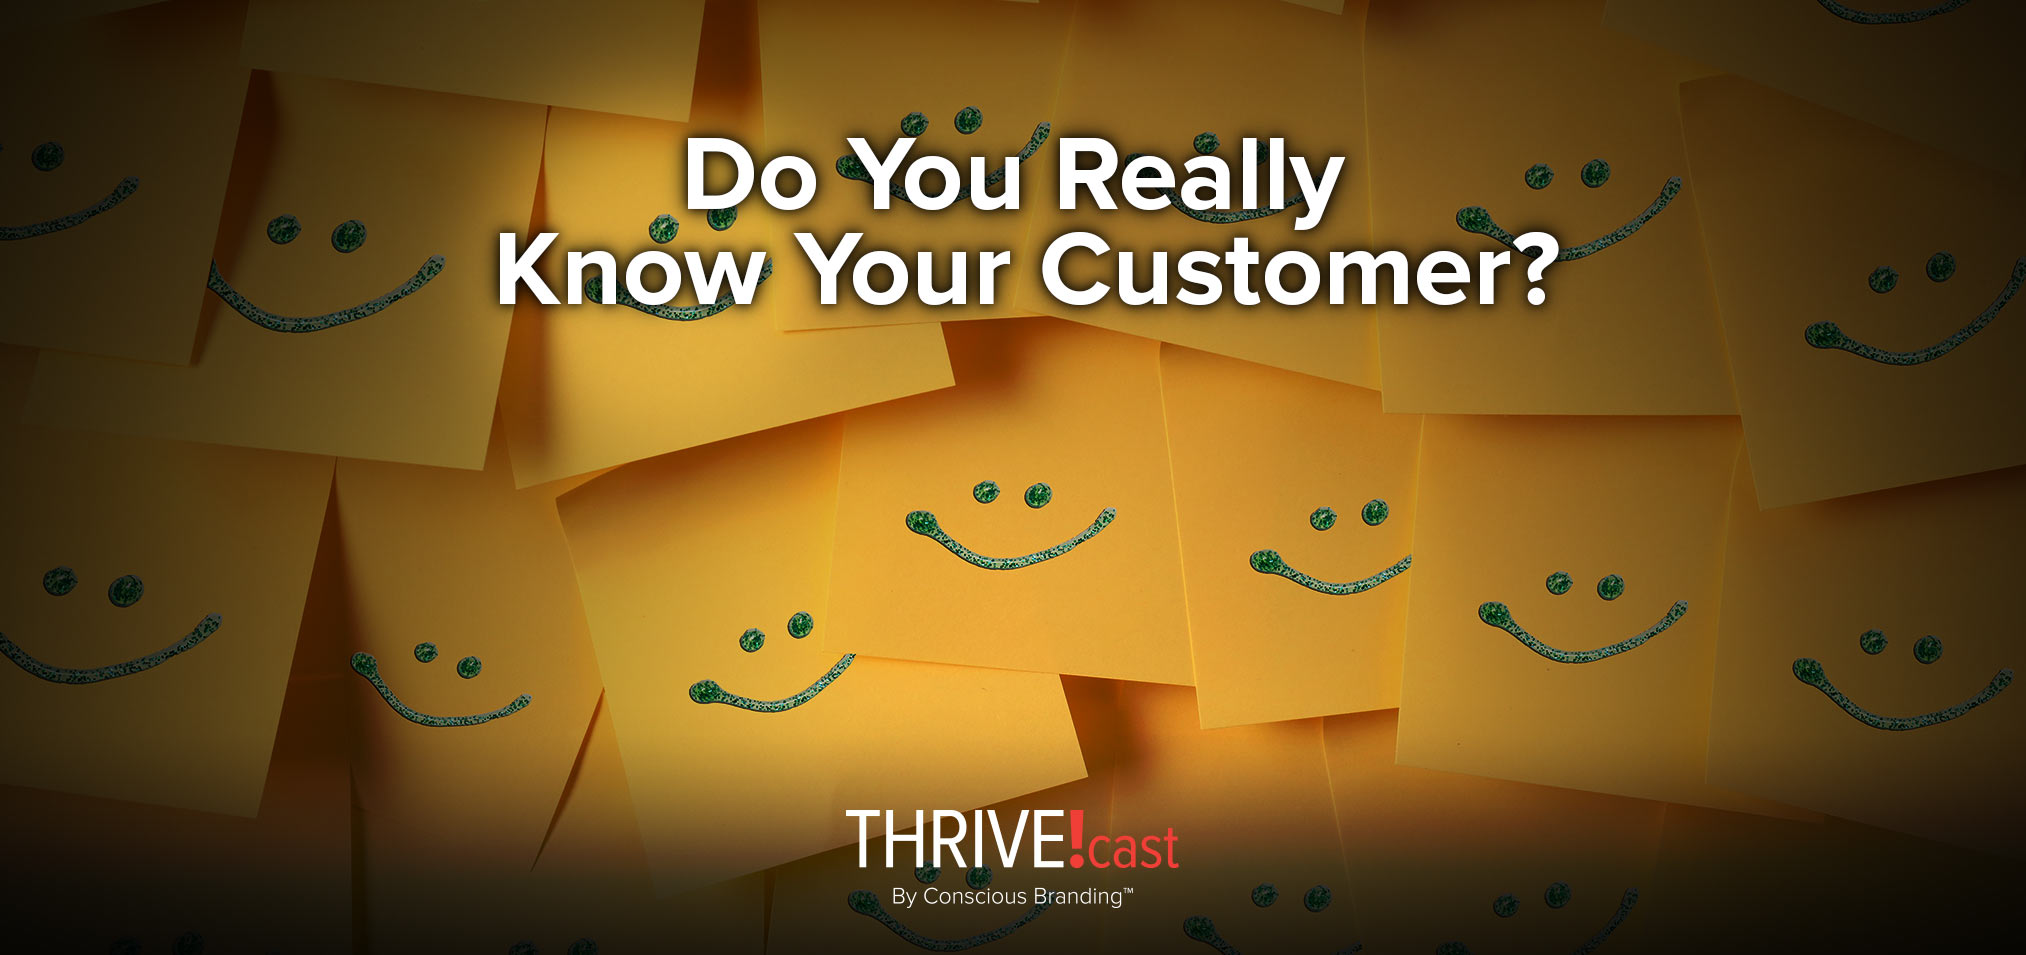 Do You Really Know Your Customer